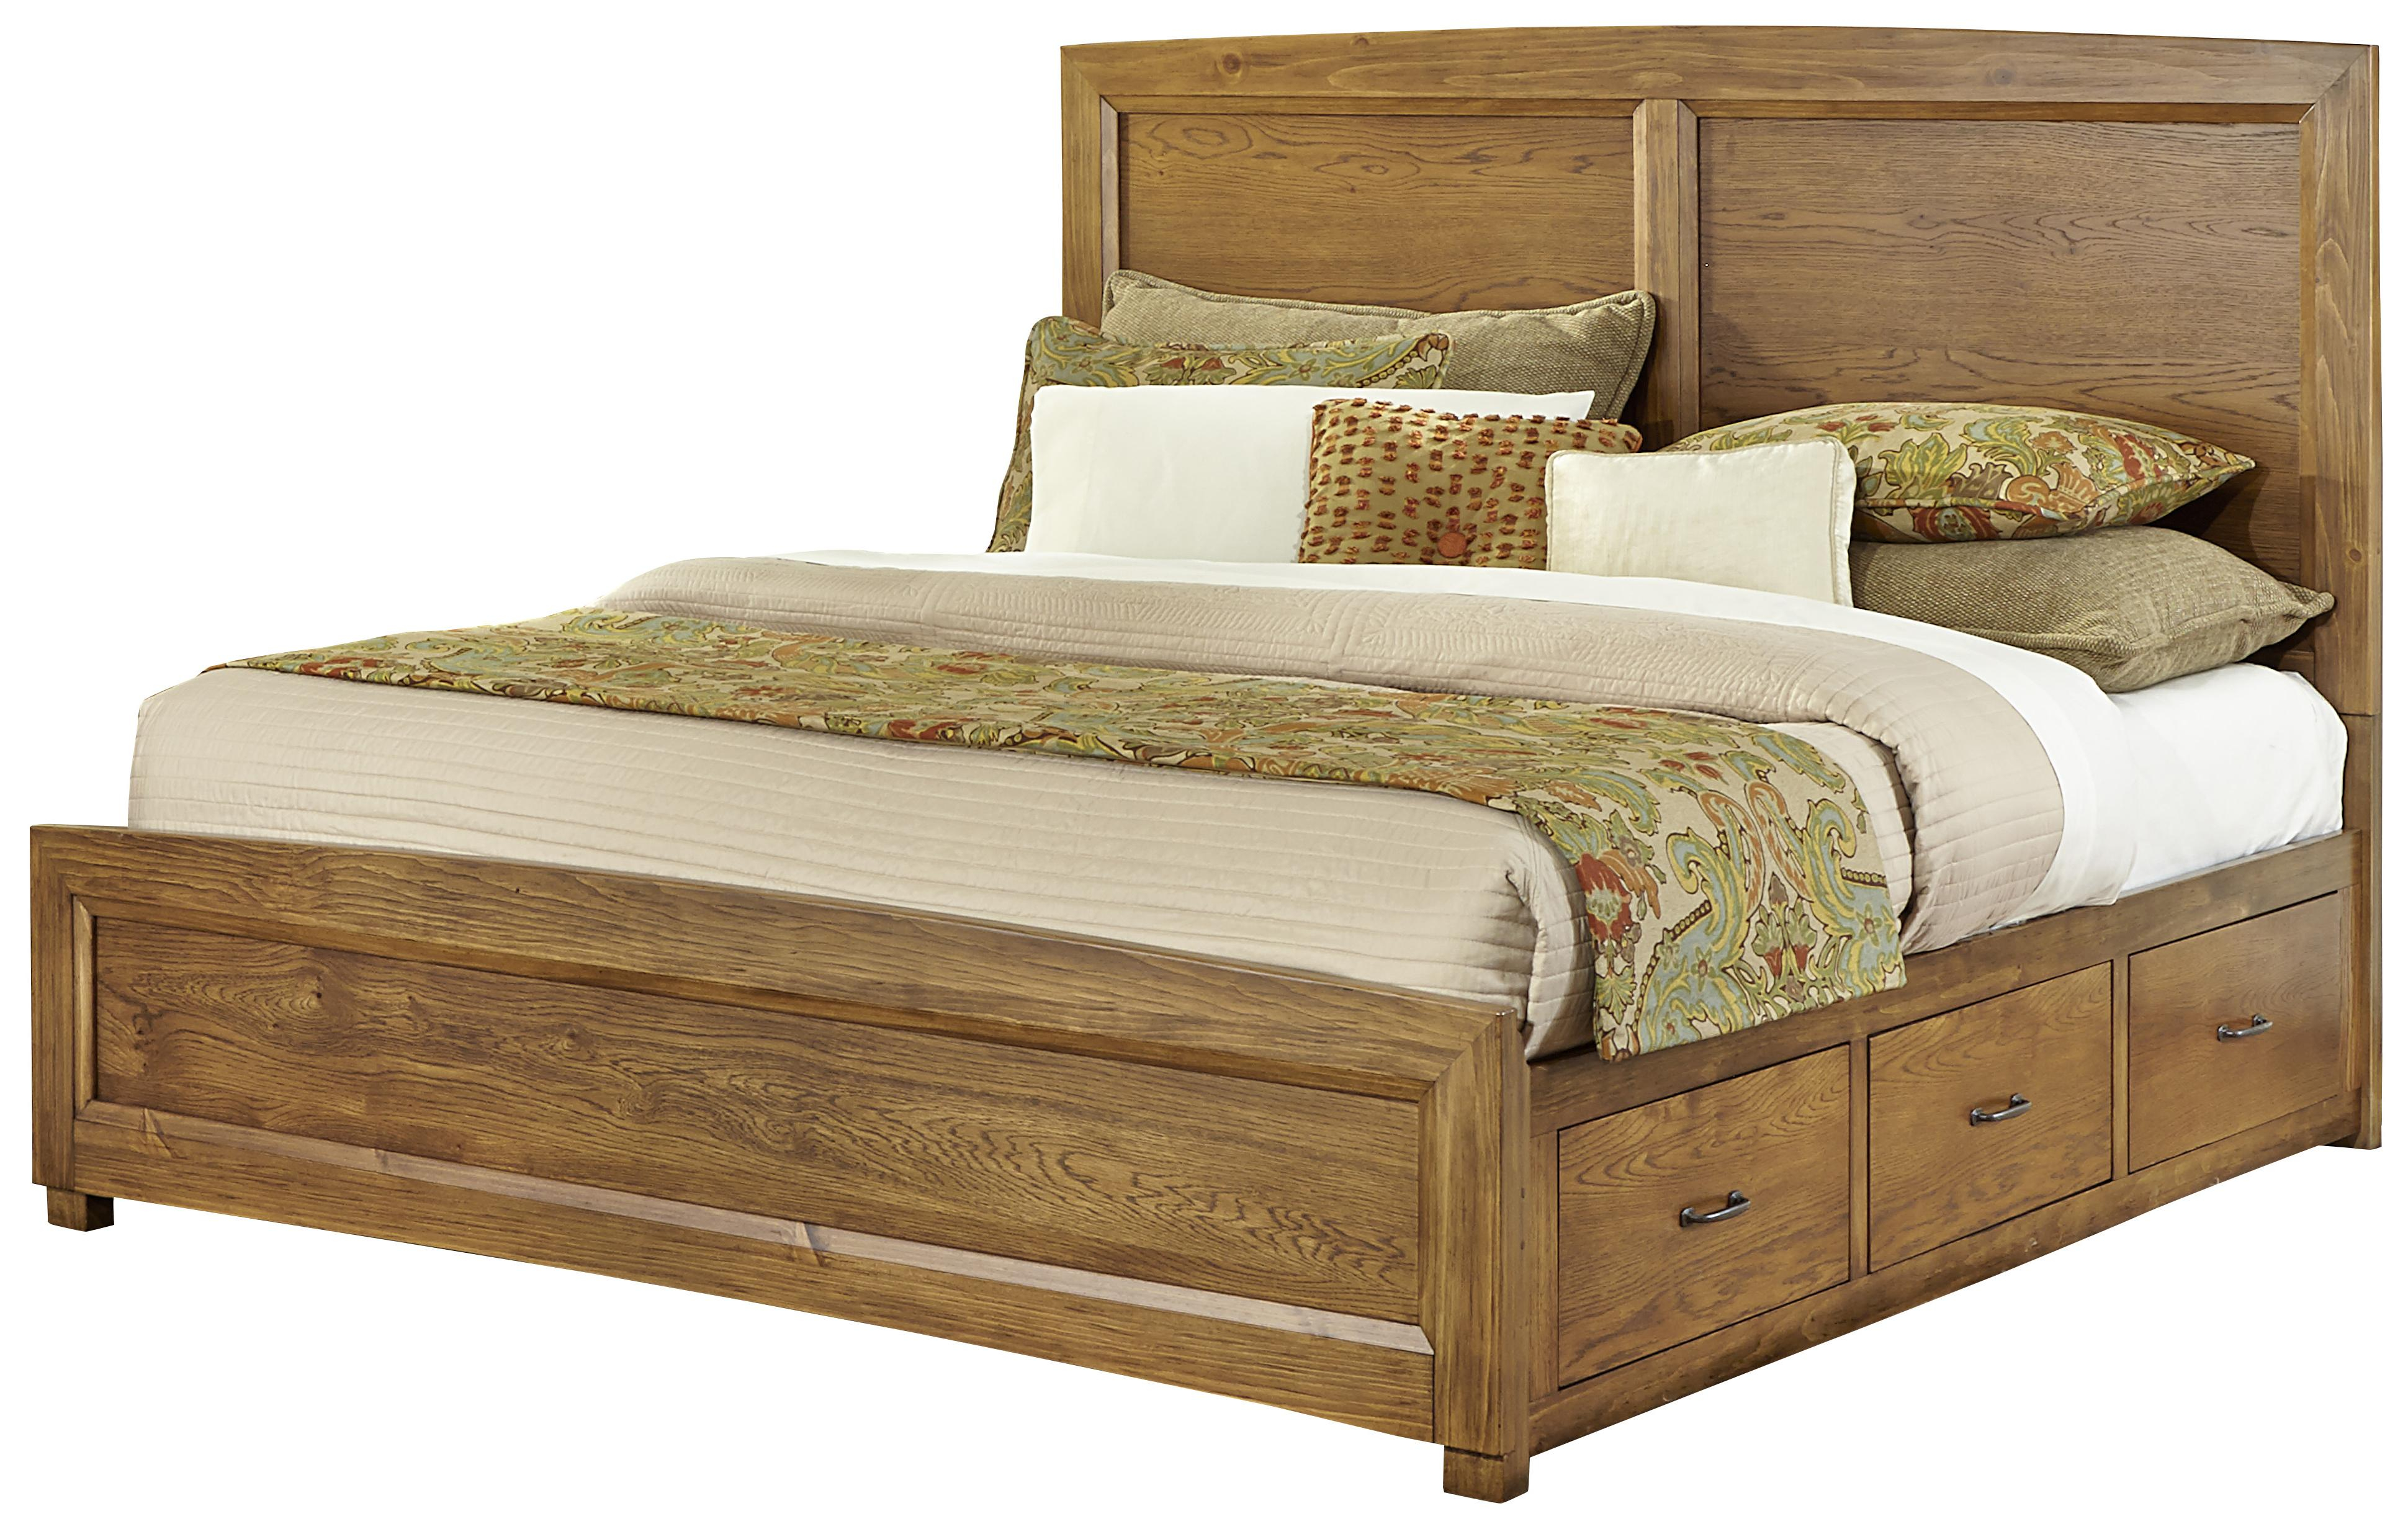 Vaughan Bassett Transitions King Panel Bed with 2 Side Storage Units - Item Number: BB63-668+866+2x082B+666T